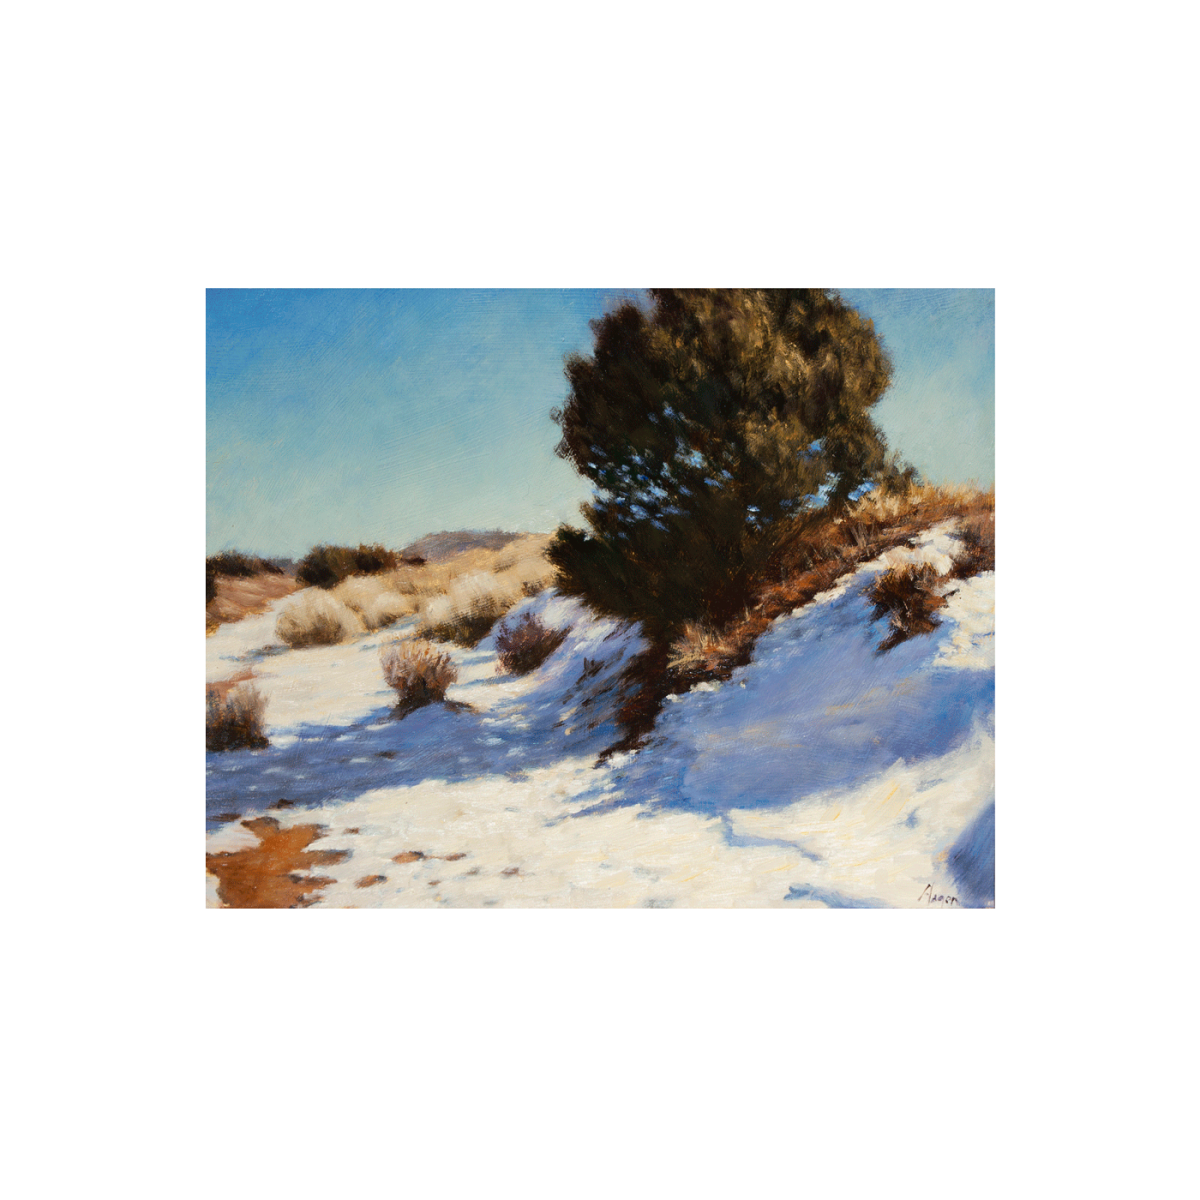 Snow Banks painting by Peter Hagen